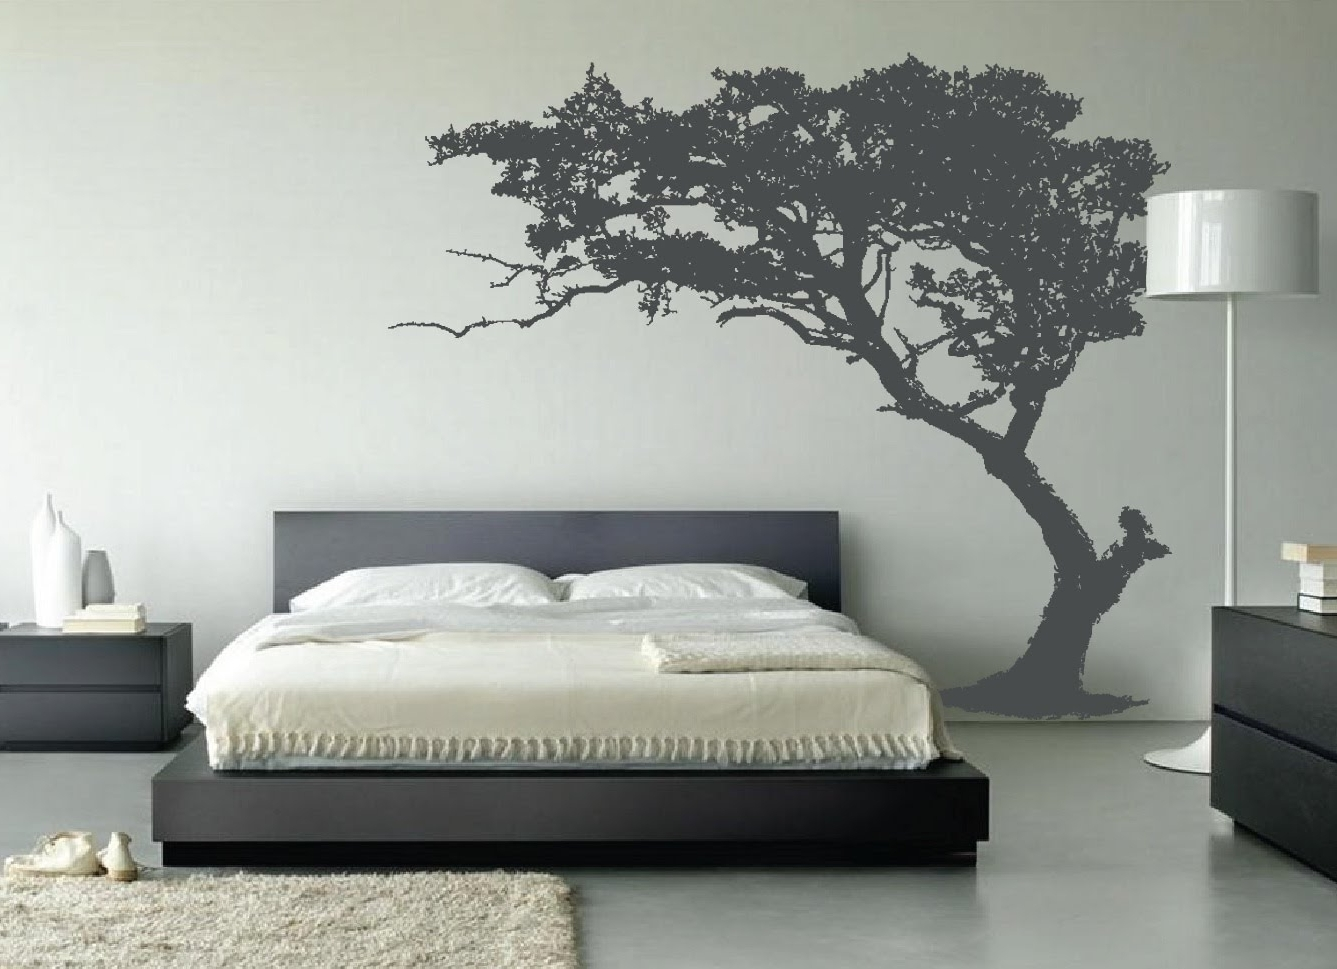 Bedroom Wall Decor~Bedroom Wall Decor Above Bed – Youtube Inside Favorite Over The Bed Wall Art (View 3 of 15)